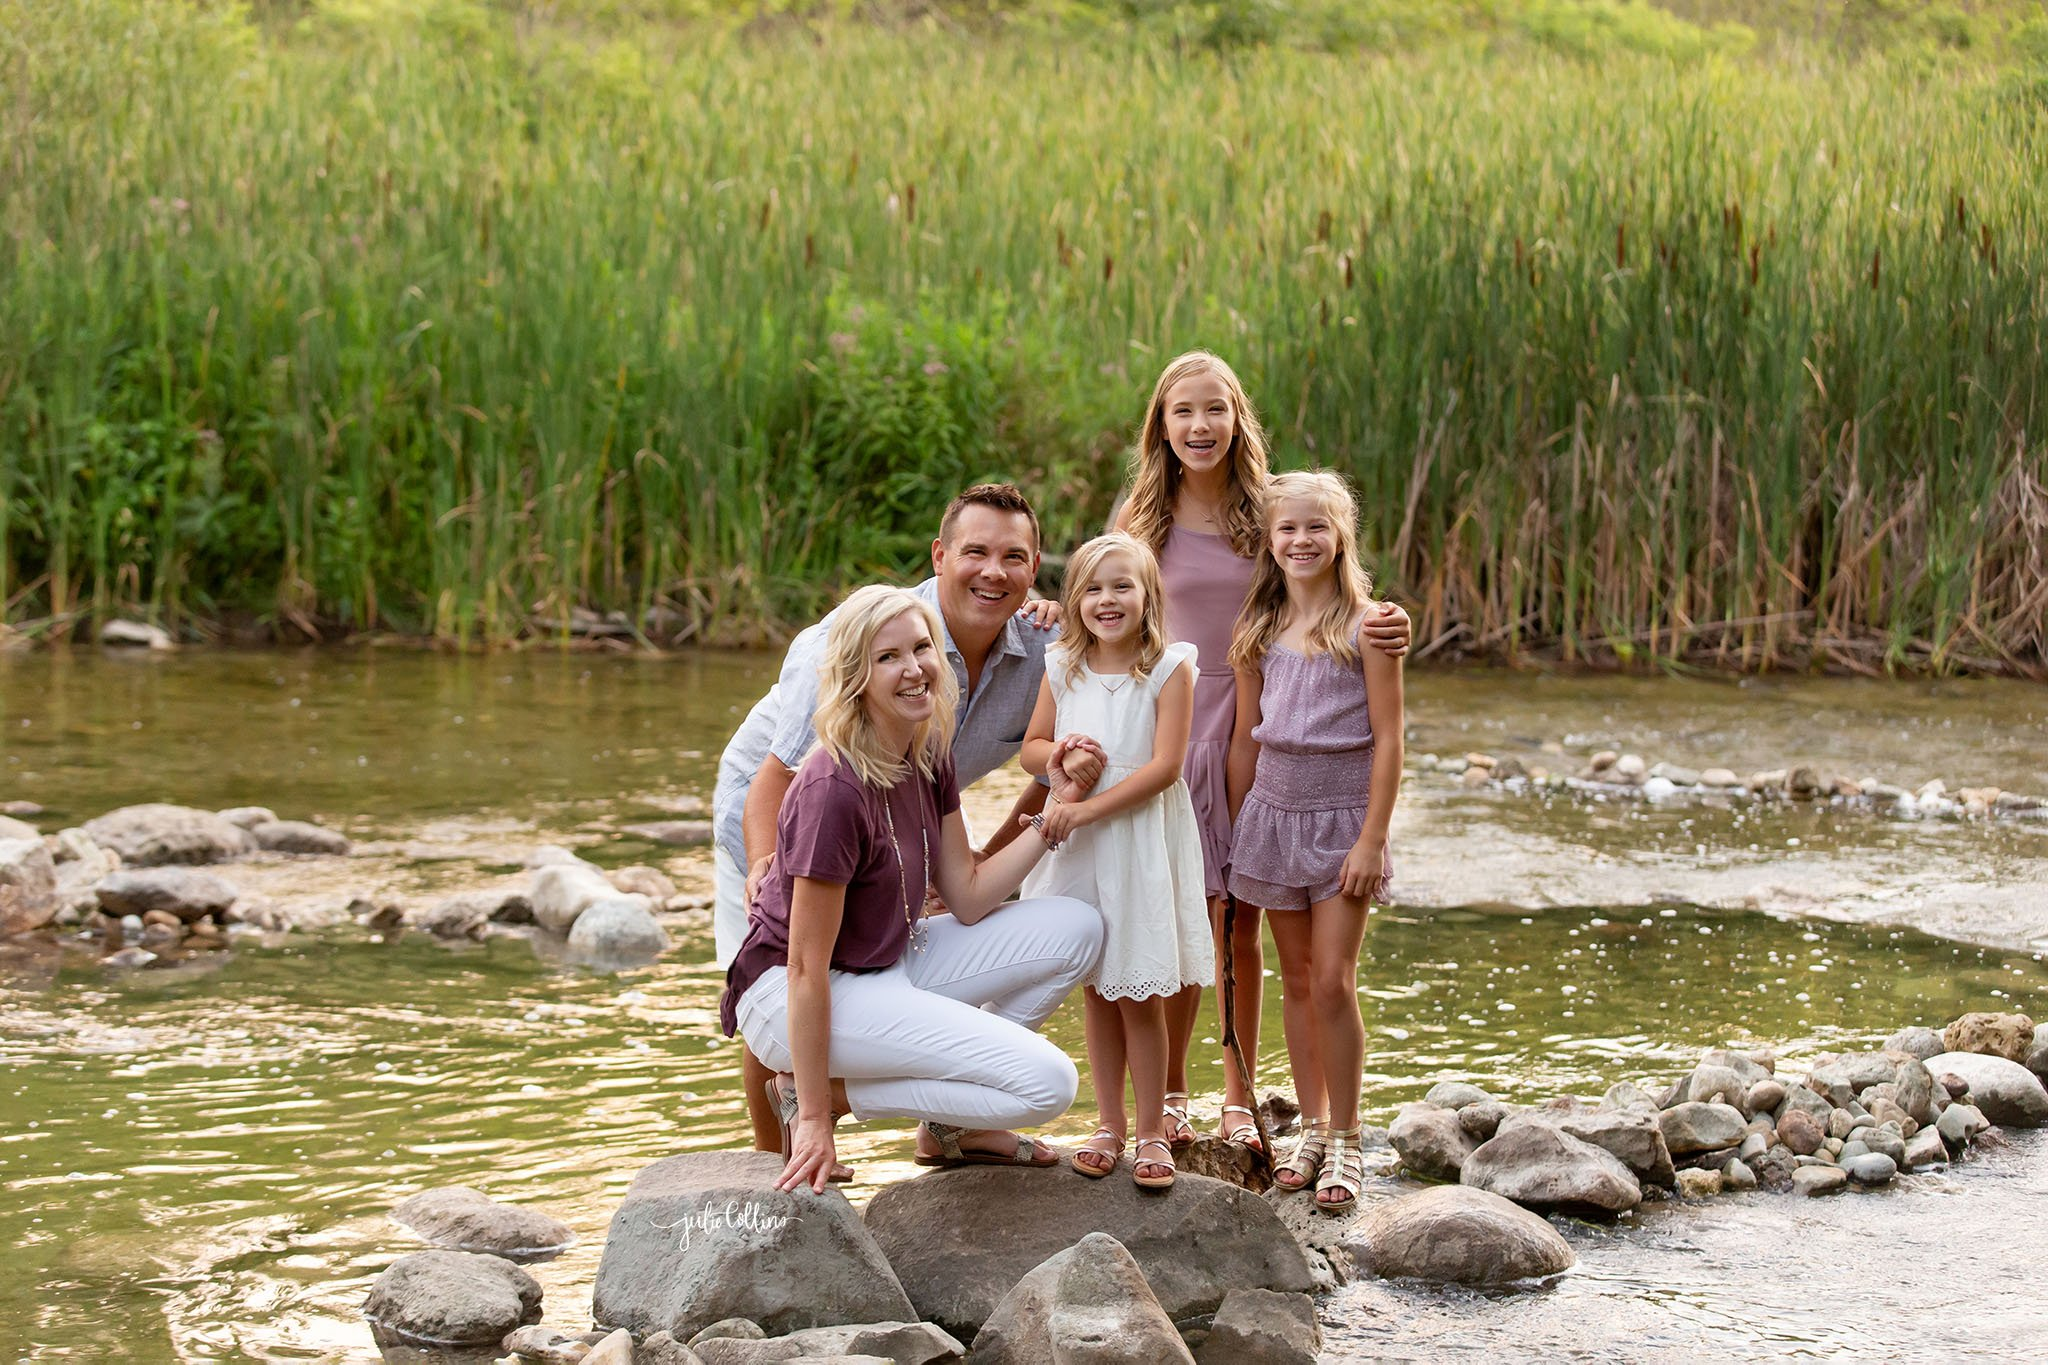 Family of five with three sisters in middle of river for family pictures at Cushing Park, Delafield, Wisconsin